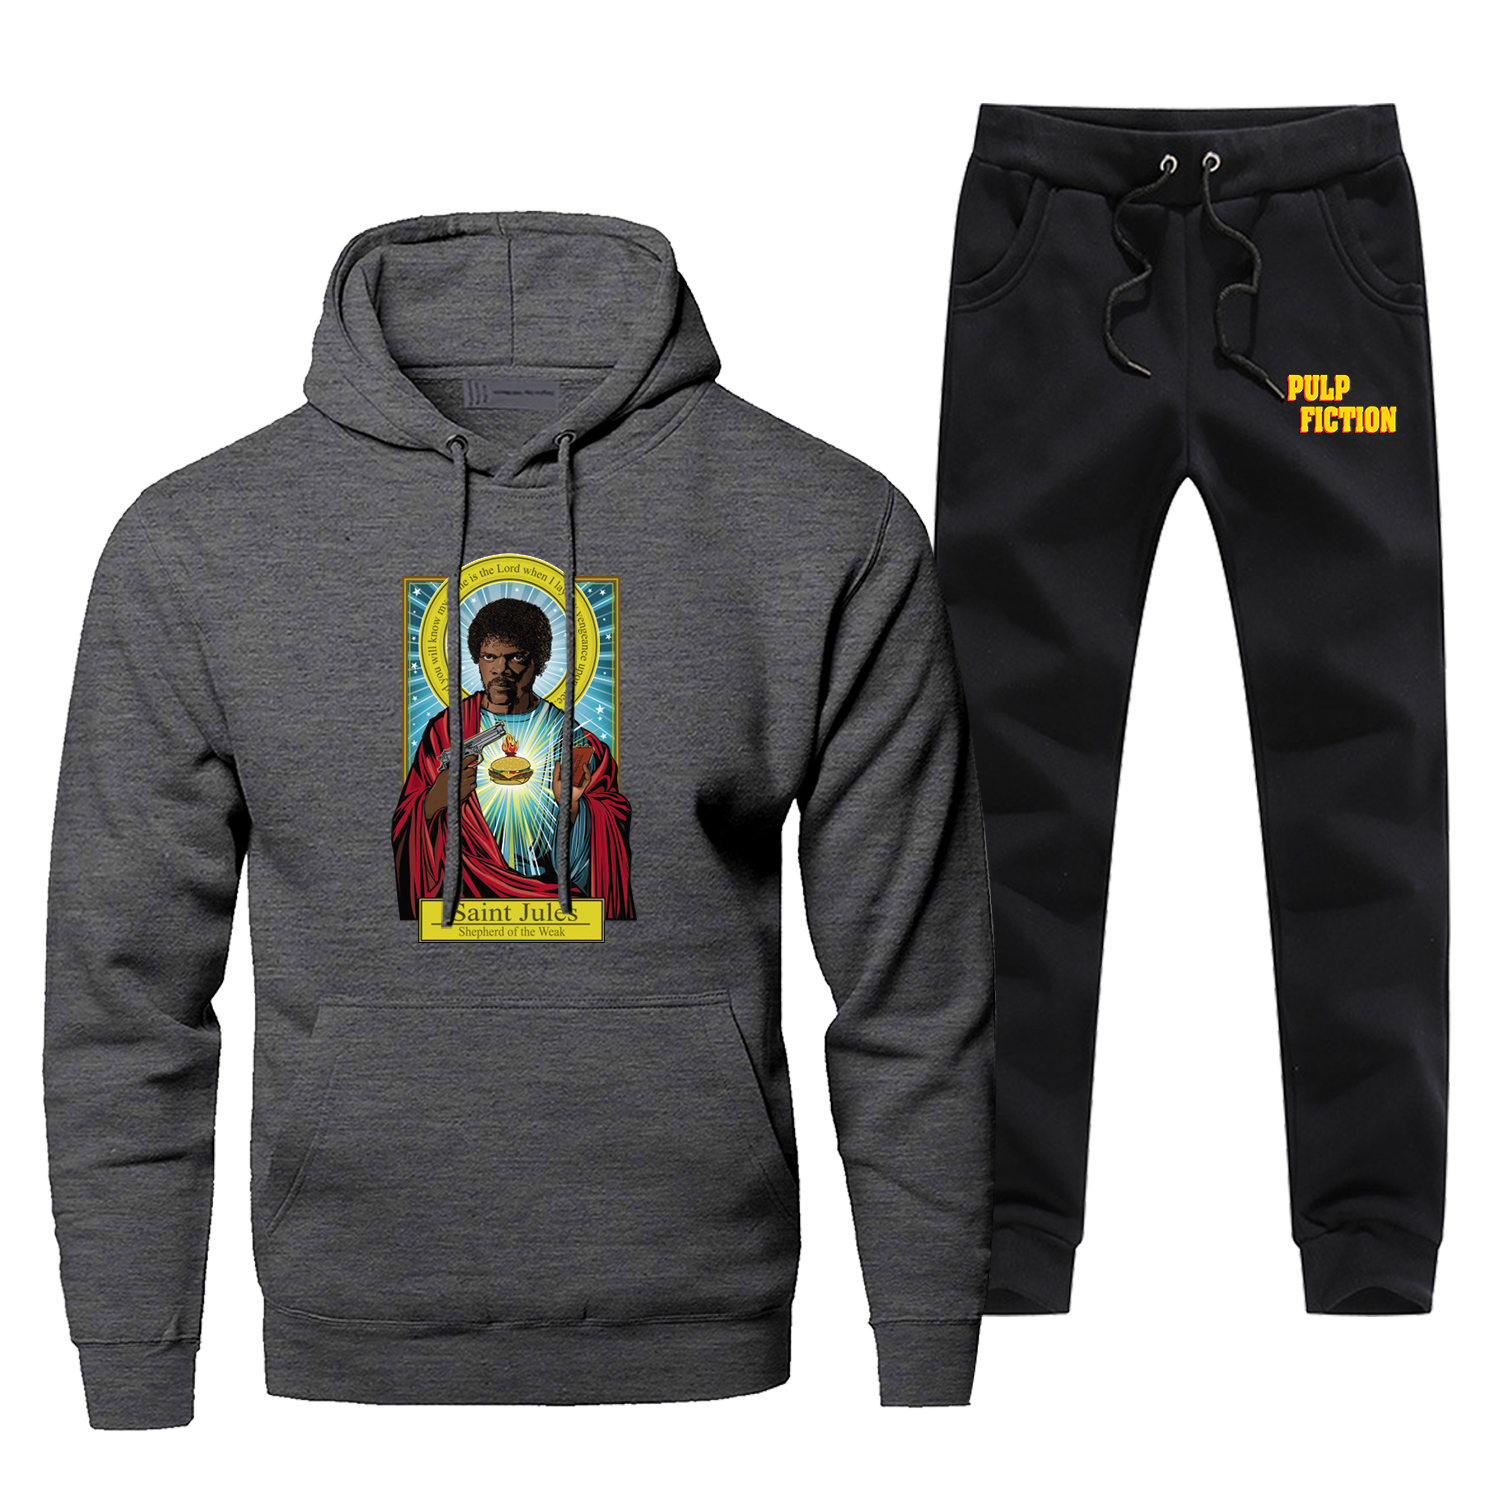 Saint Jules Pulp Fiction Print Hoodies Vintage Style Sweatshirts Fashion High Quality Men's Full Suit Tracksuit Bodywarmer Pants